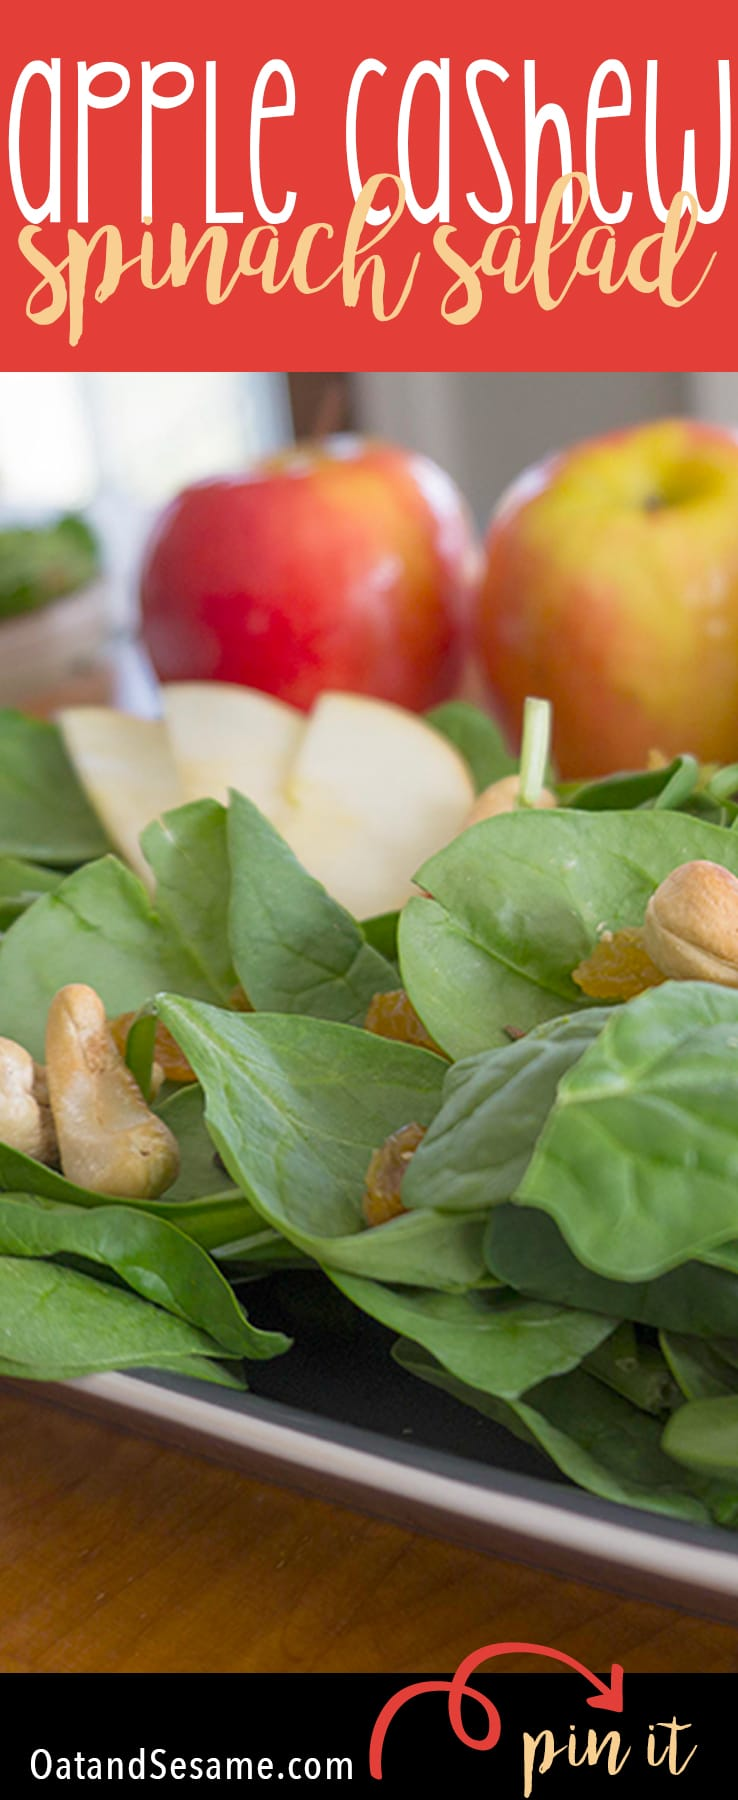 Apple Cashew Spinach Salad - Nutty and sweet with a tangy dressing | #Apple | #Salad | #Vegetarian | Recipe at OatandSesame.com